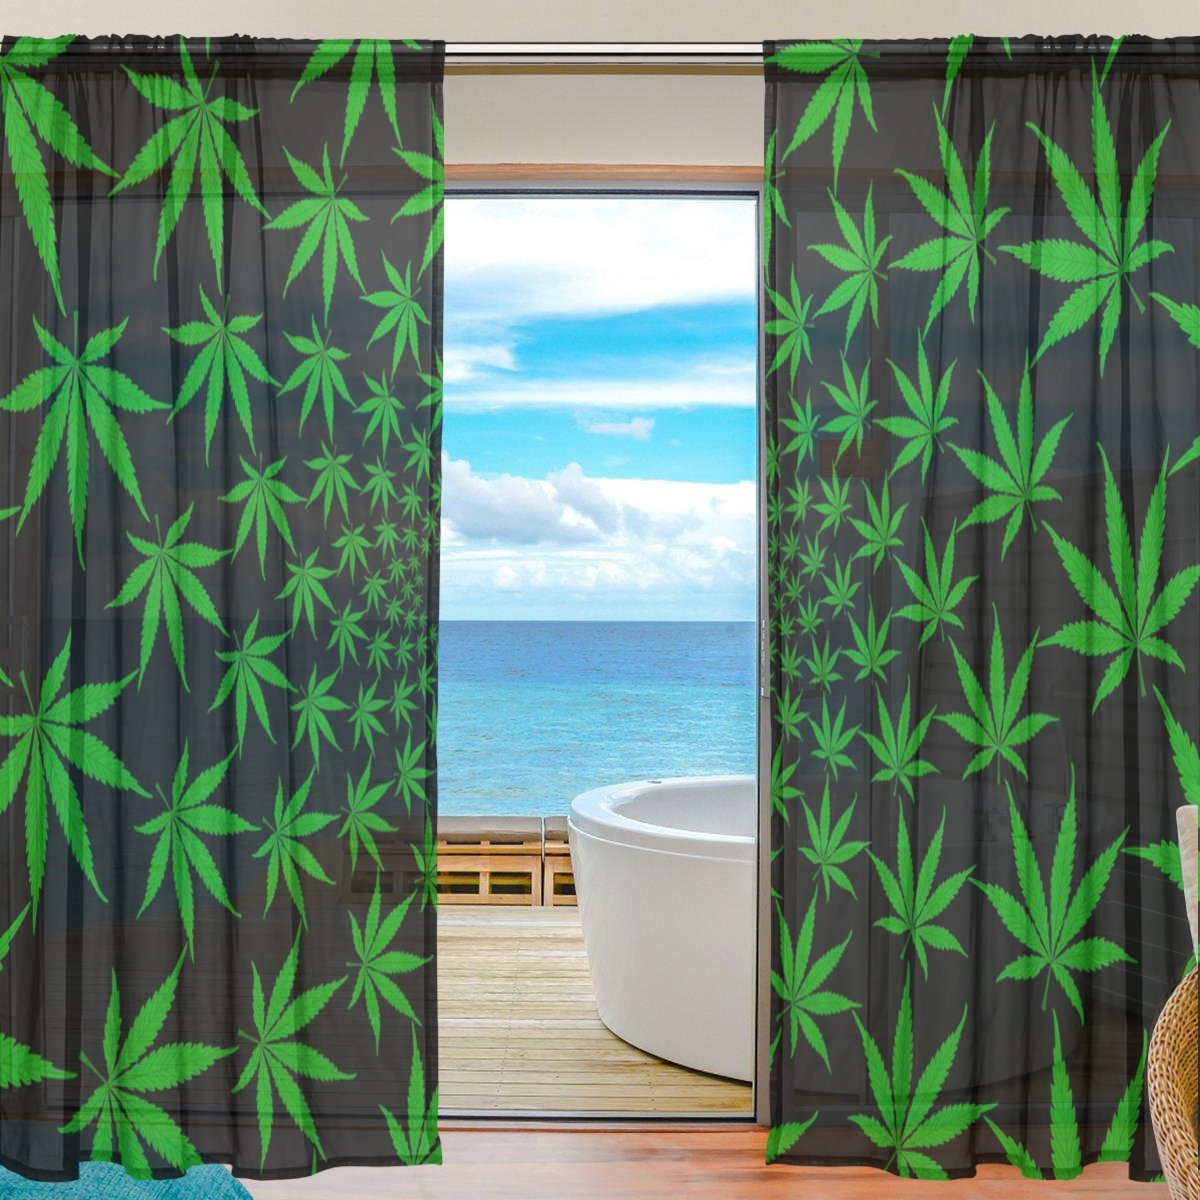 SEULIFE Window Sheer Curtain, Marijuana Leaf Leaves Green Voile Curtain Drapes for Door Kitchen Living Room Bedroom 55x78 inches 2 Panels by SEULIFE